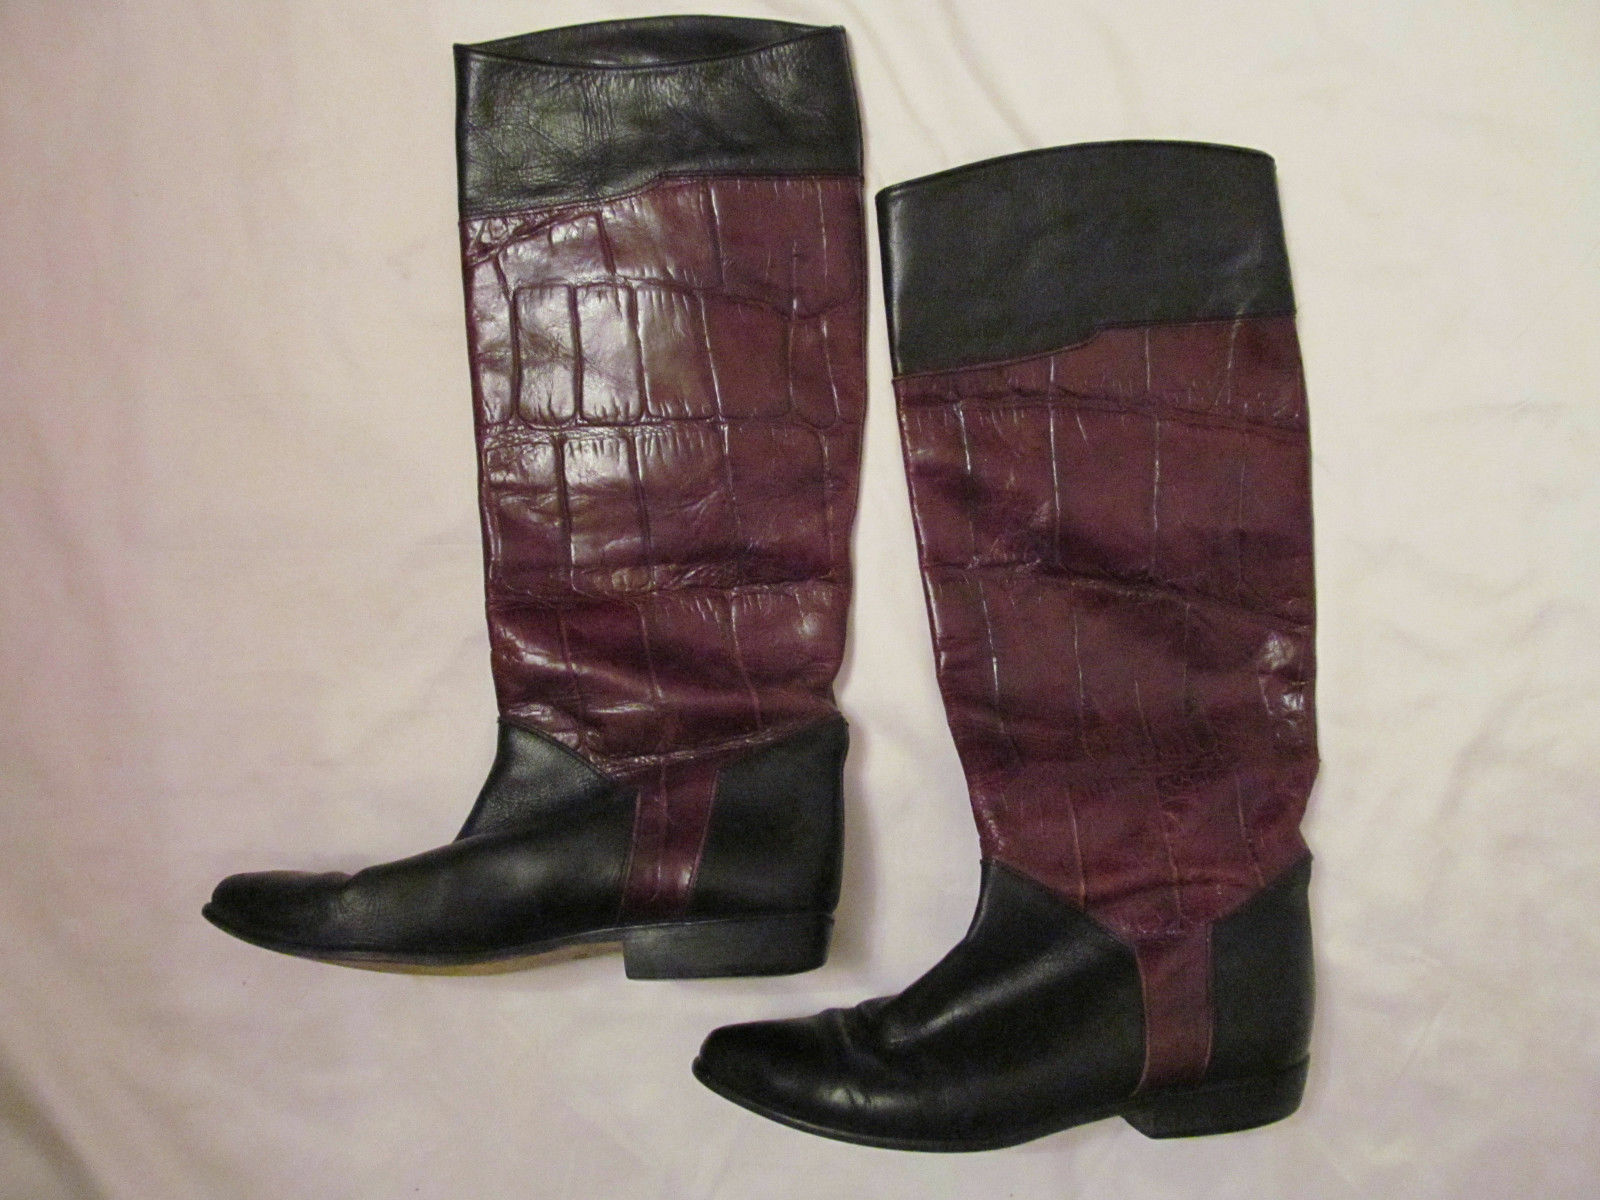 vintage SESTO MEUCCI FLORENCE schwarz and Braun croc embossed tall riding boots